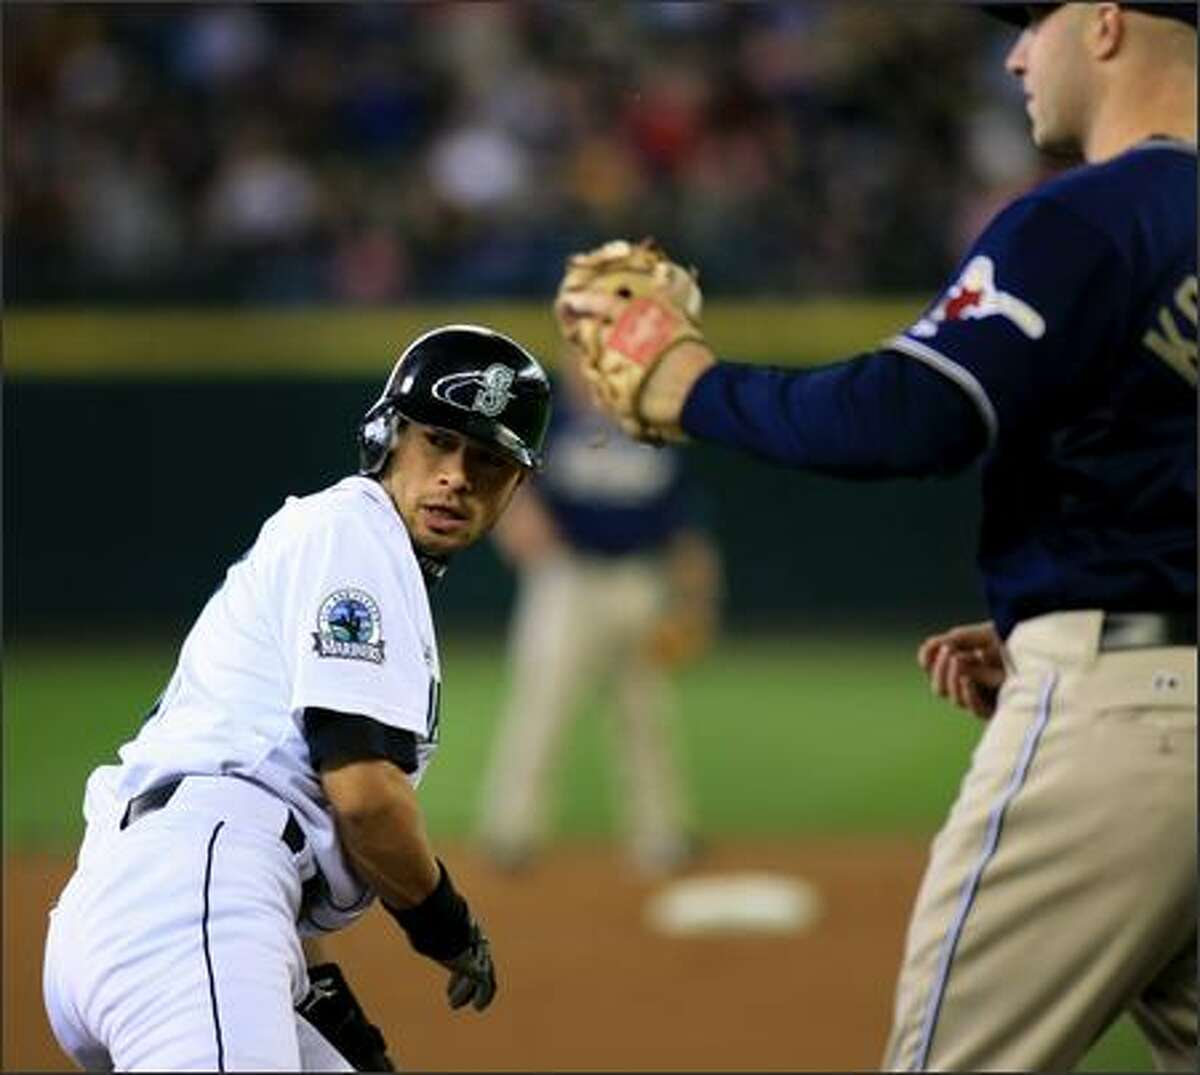 Seattle Mariners Ichiro Suzuki looks to the umpire after being tagged out by San Diego Padres third baseman Kevin Kouzmanoff on a throw from catcher Josh Bard during the 1st inning. Ichiro stole second earlier in the inning.